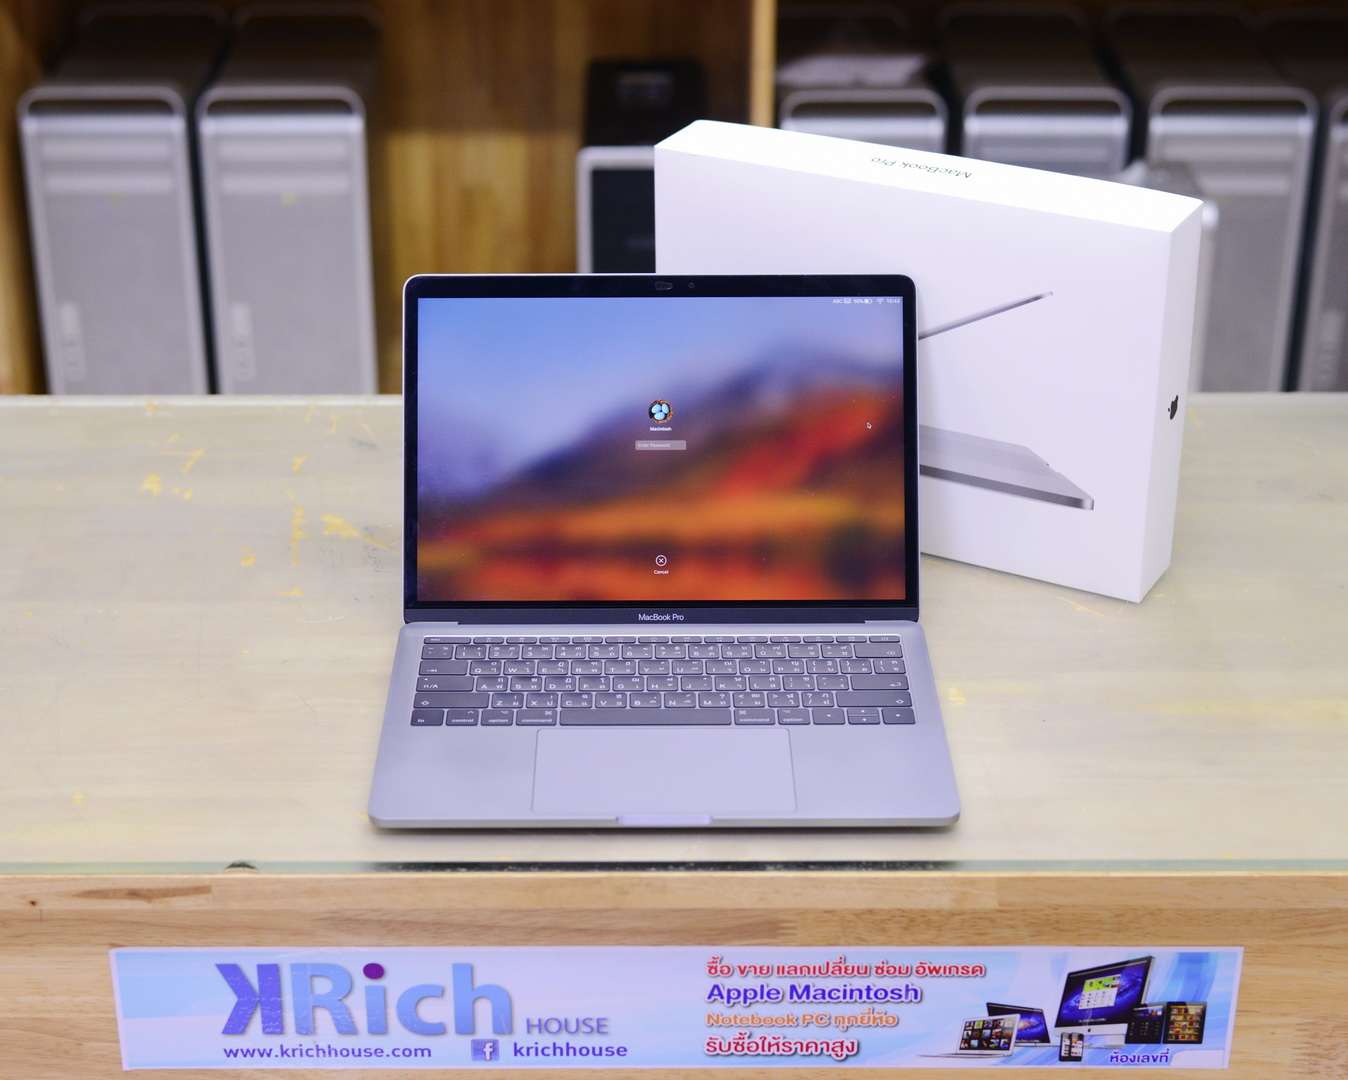 MacBook Pro (13-inch, Mid 2017) No-Touch Bar, Space Gray - Core i5 2.3GHz RAM 8GB SSD 128GB - FullBox